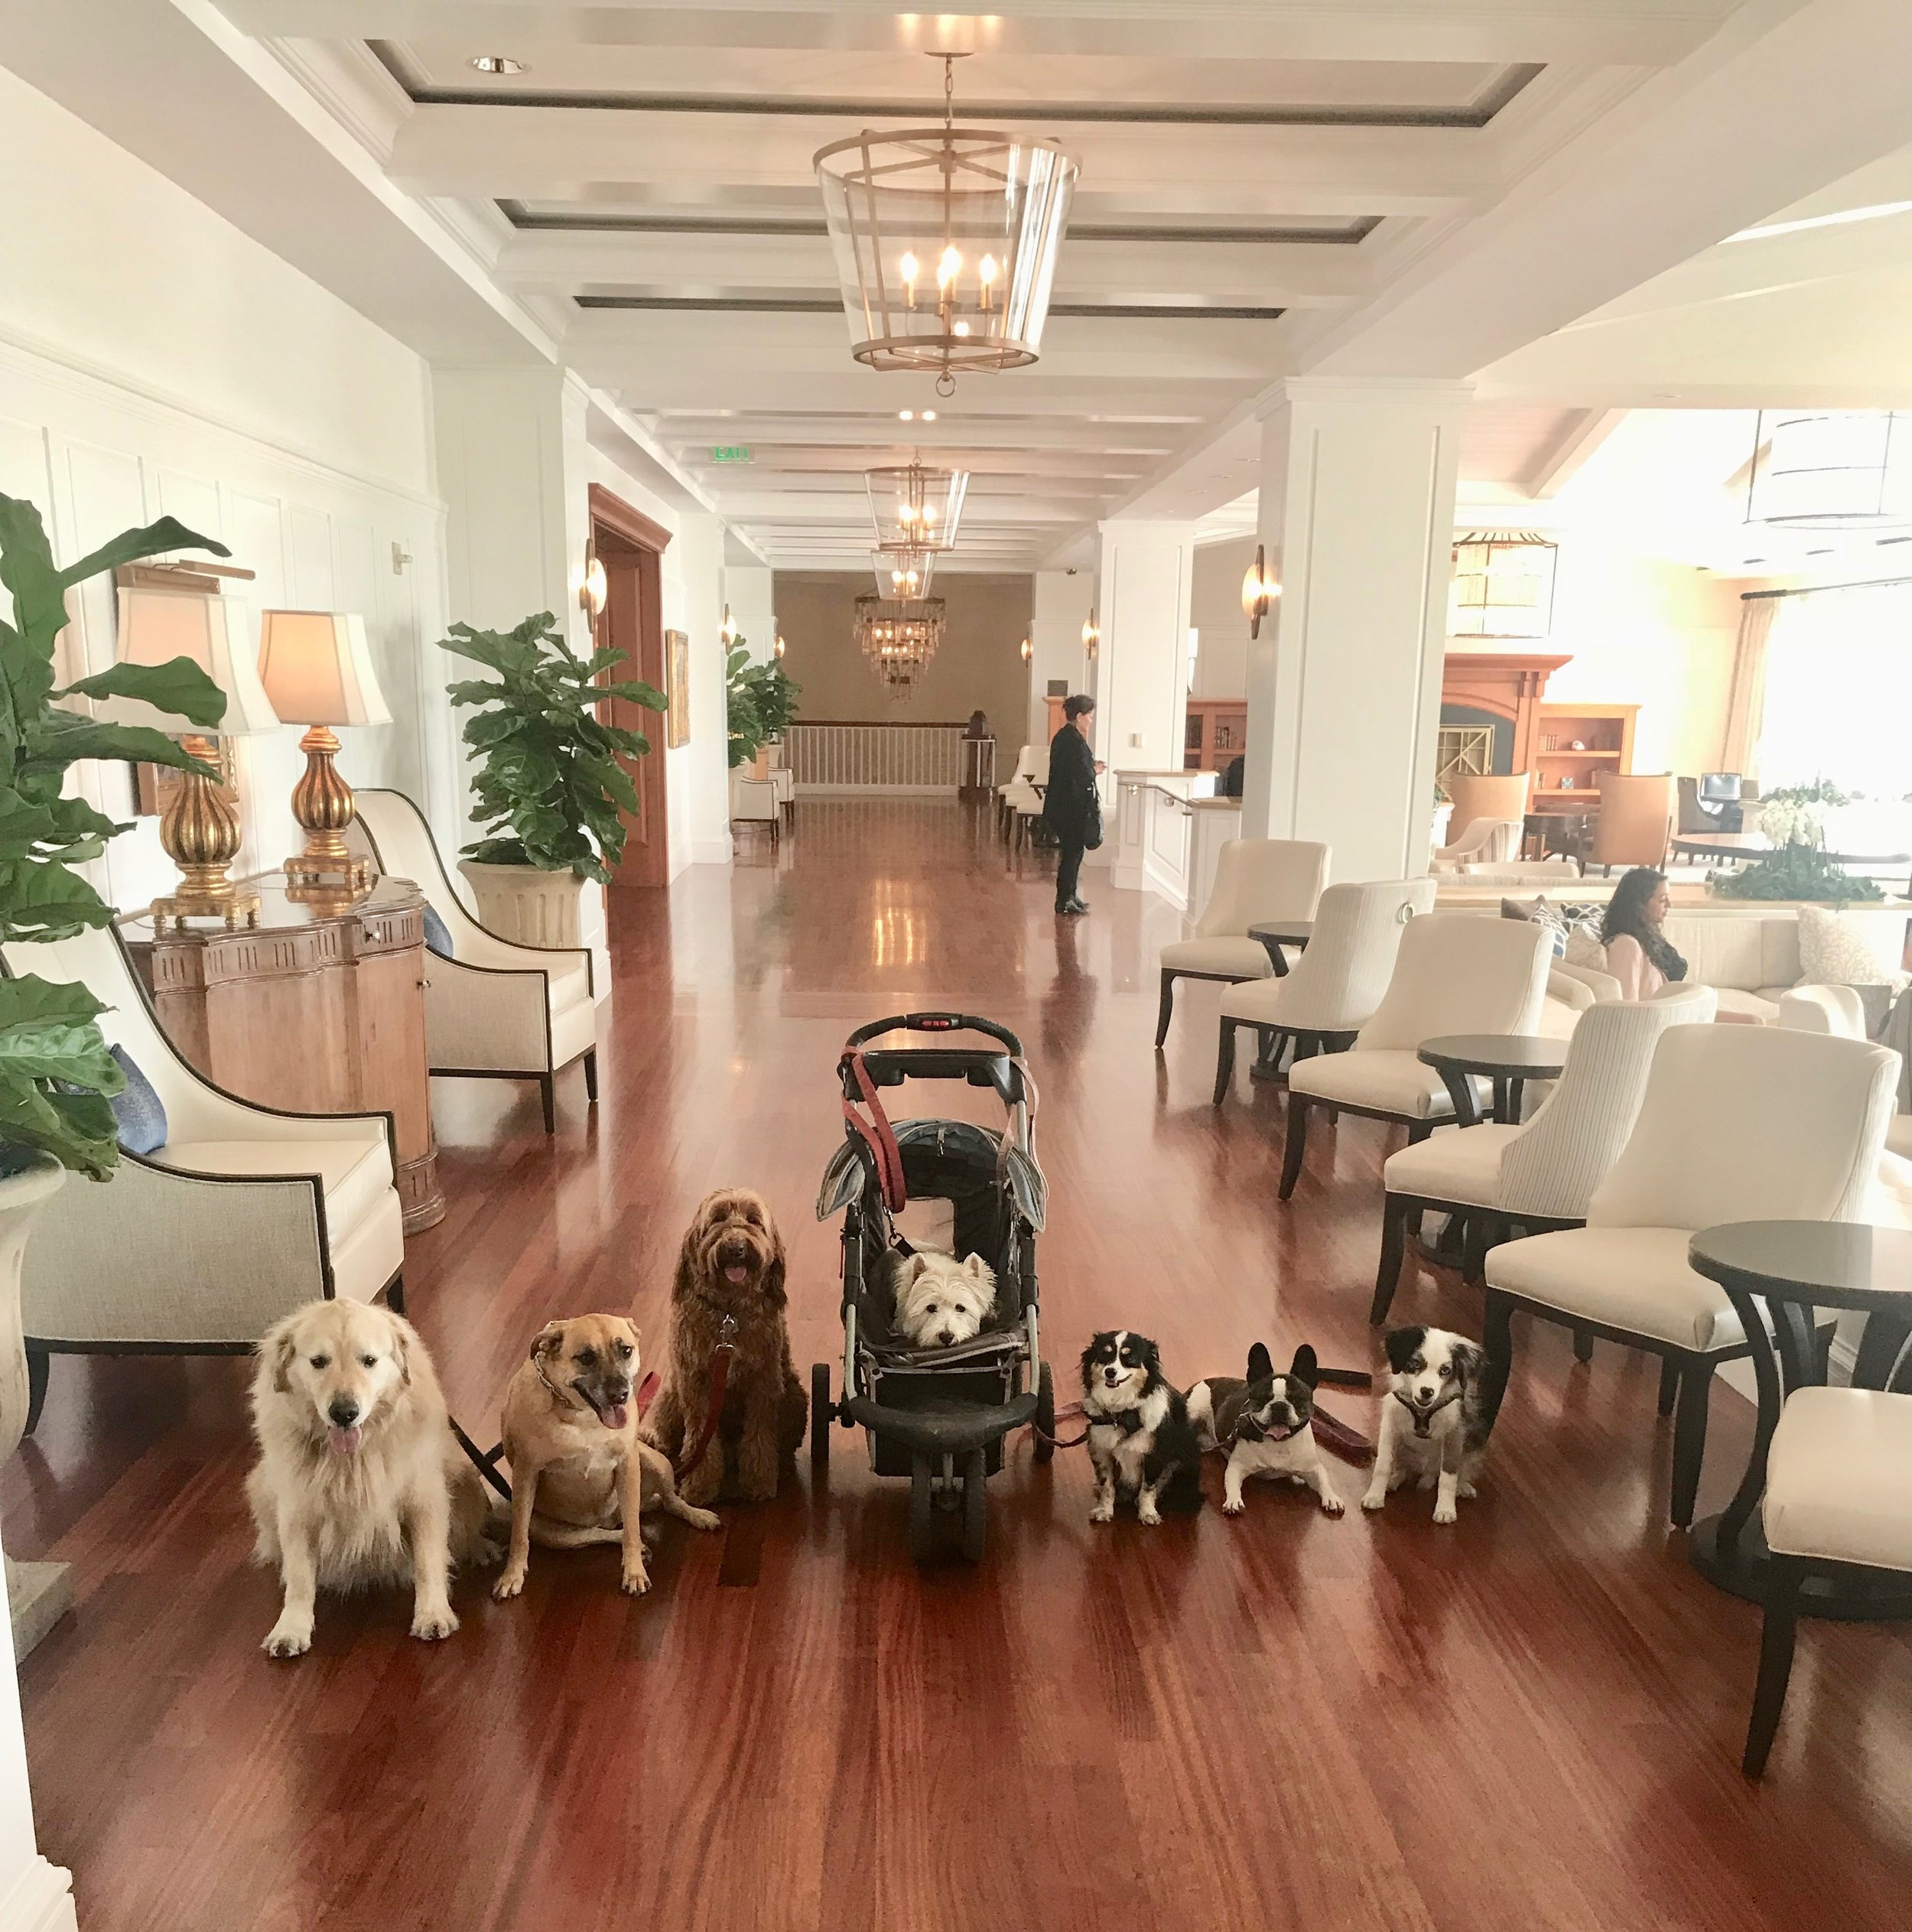 The Crew showing off their elevated behavioral skills at one of our favorite 5 Star stopping grounds - The Montage Resort & Spa in Laguna Beach, California.